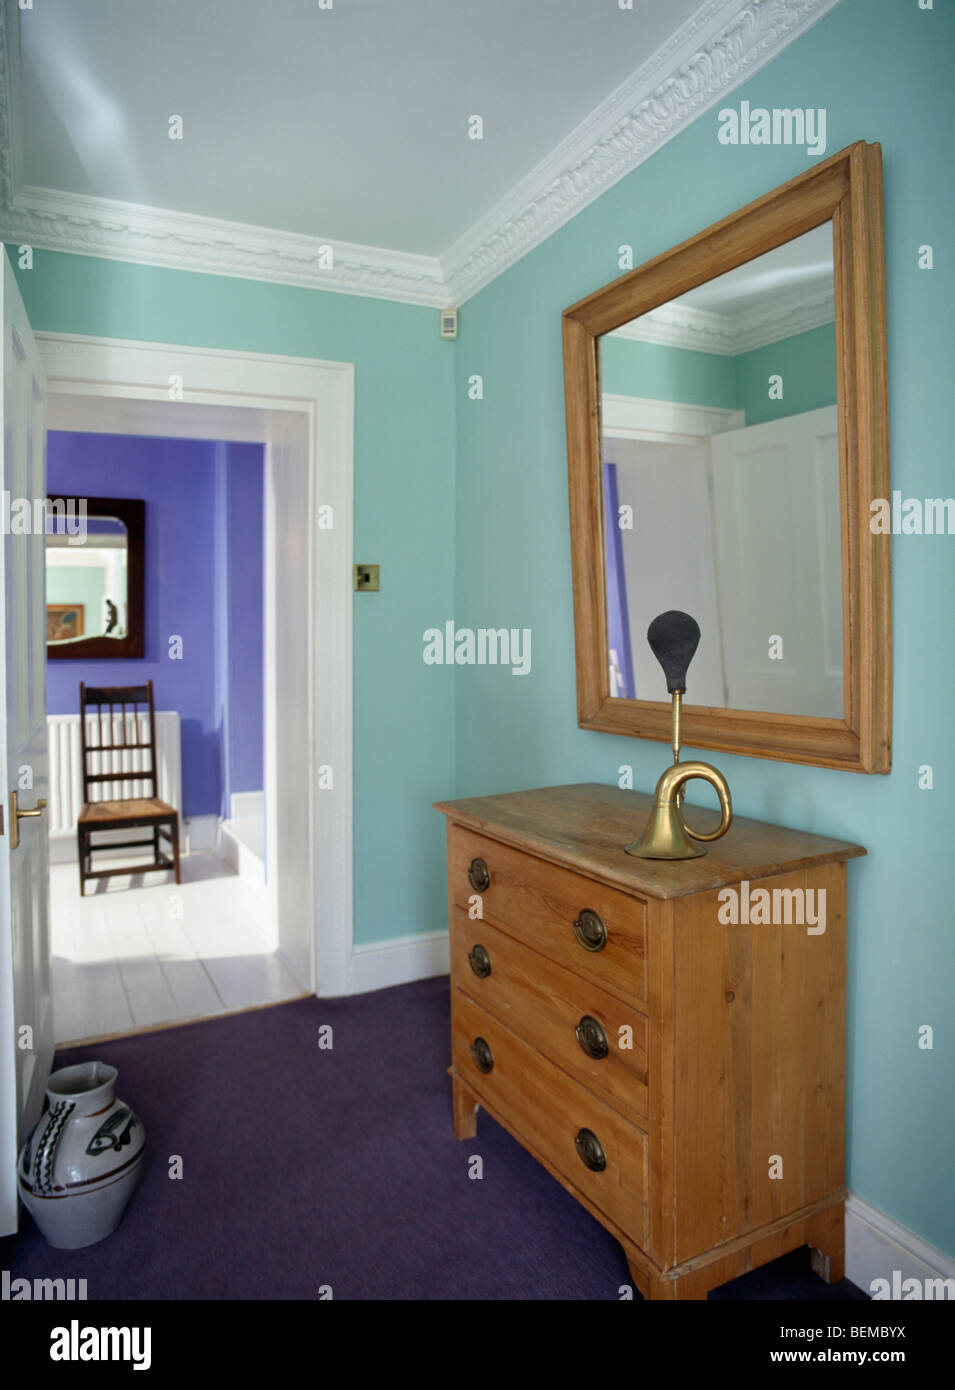 Mirror Above Chest Of Drawers On Turquoise Landing With Door Open Into Blue  Bathroom